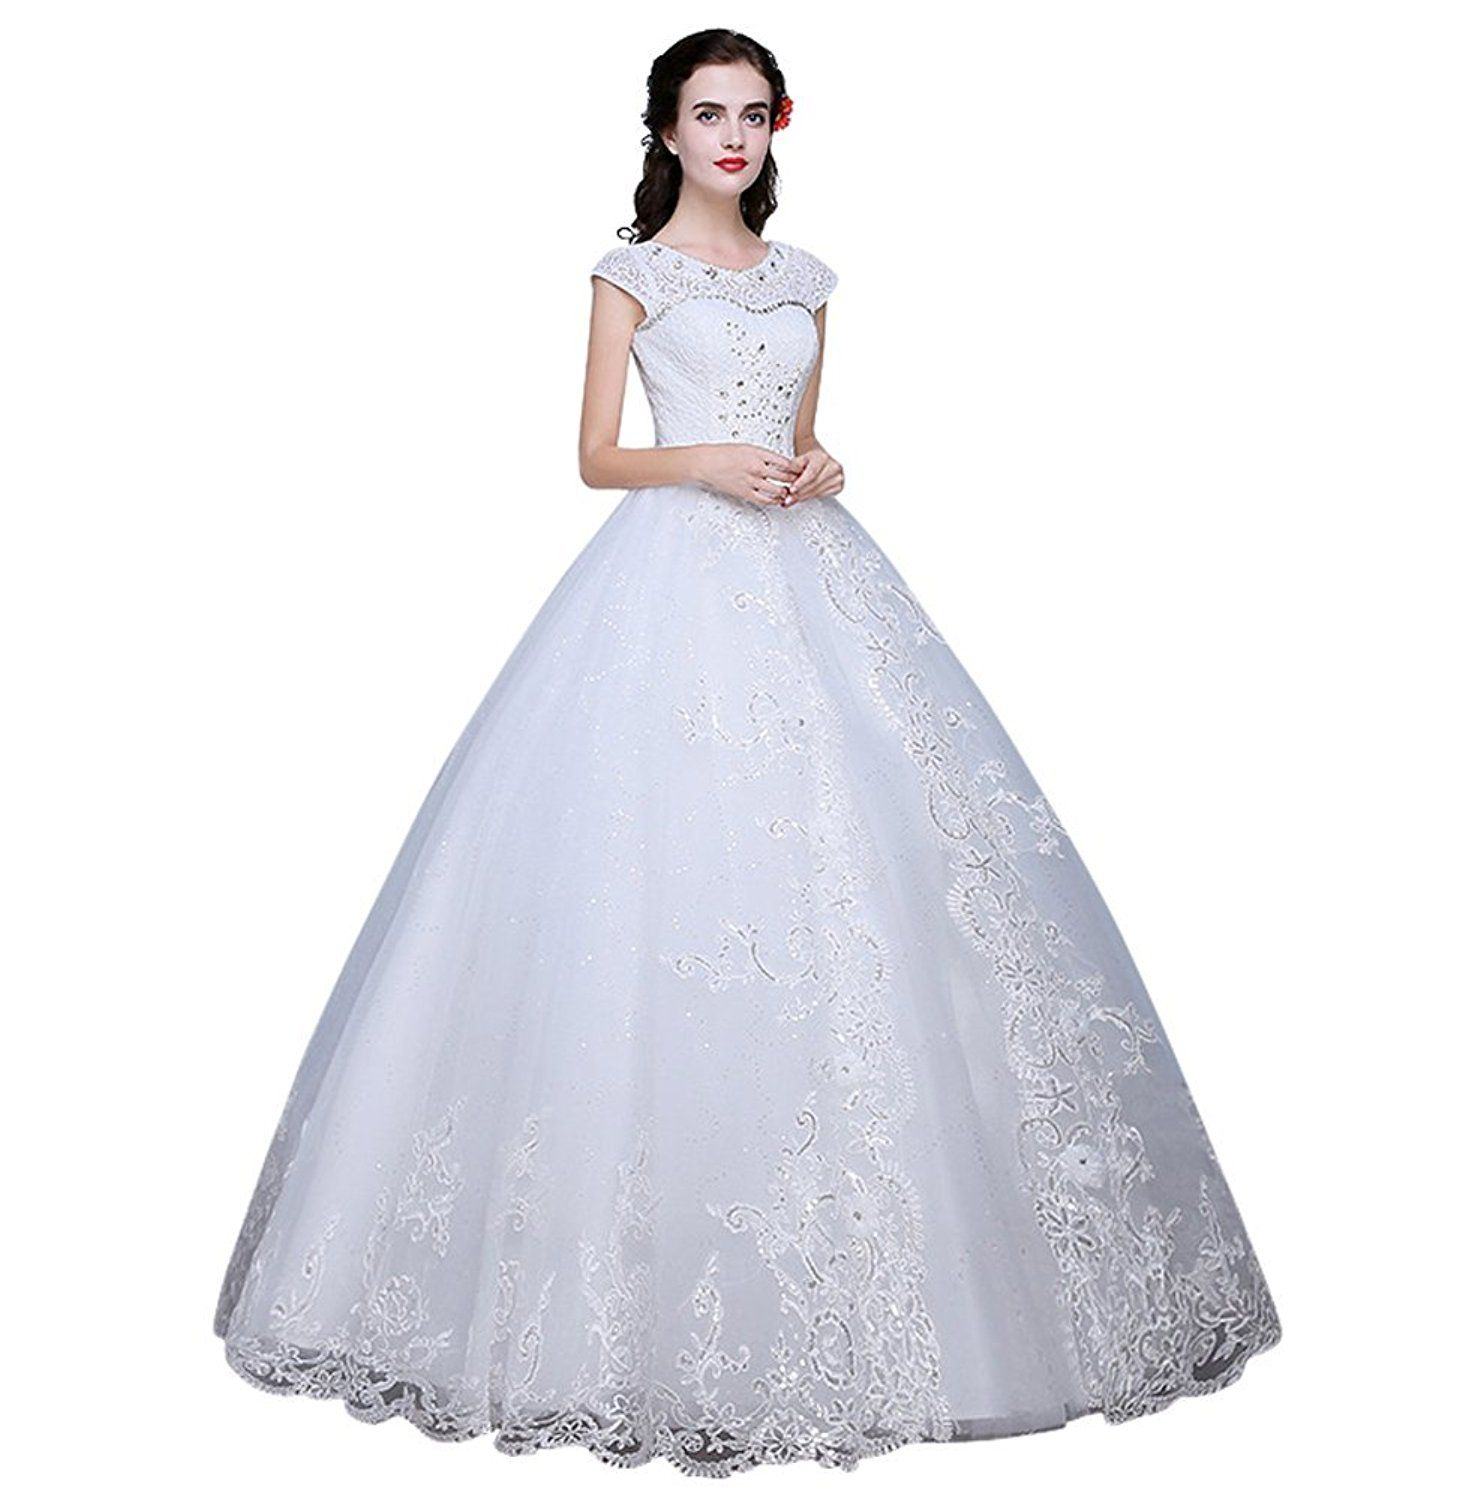 Wedding dresses with rhinestones  Drasawee Top Tulle Pearls Rhinestones Embellished Wedding Dress